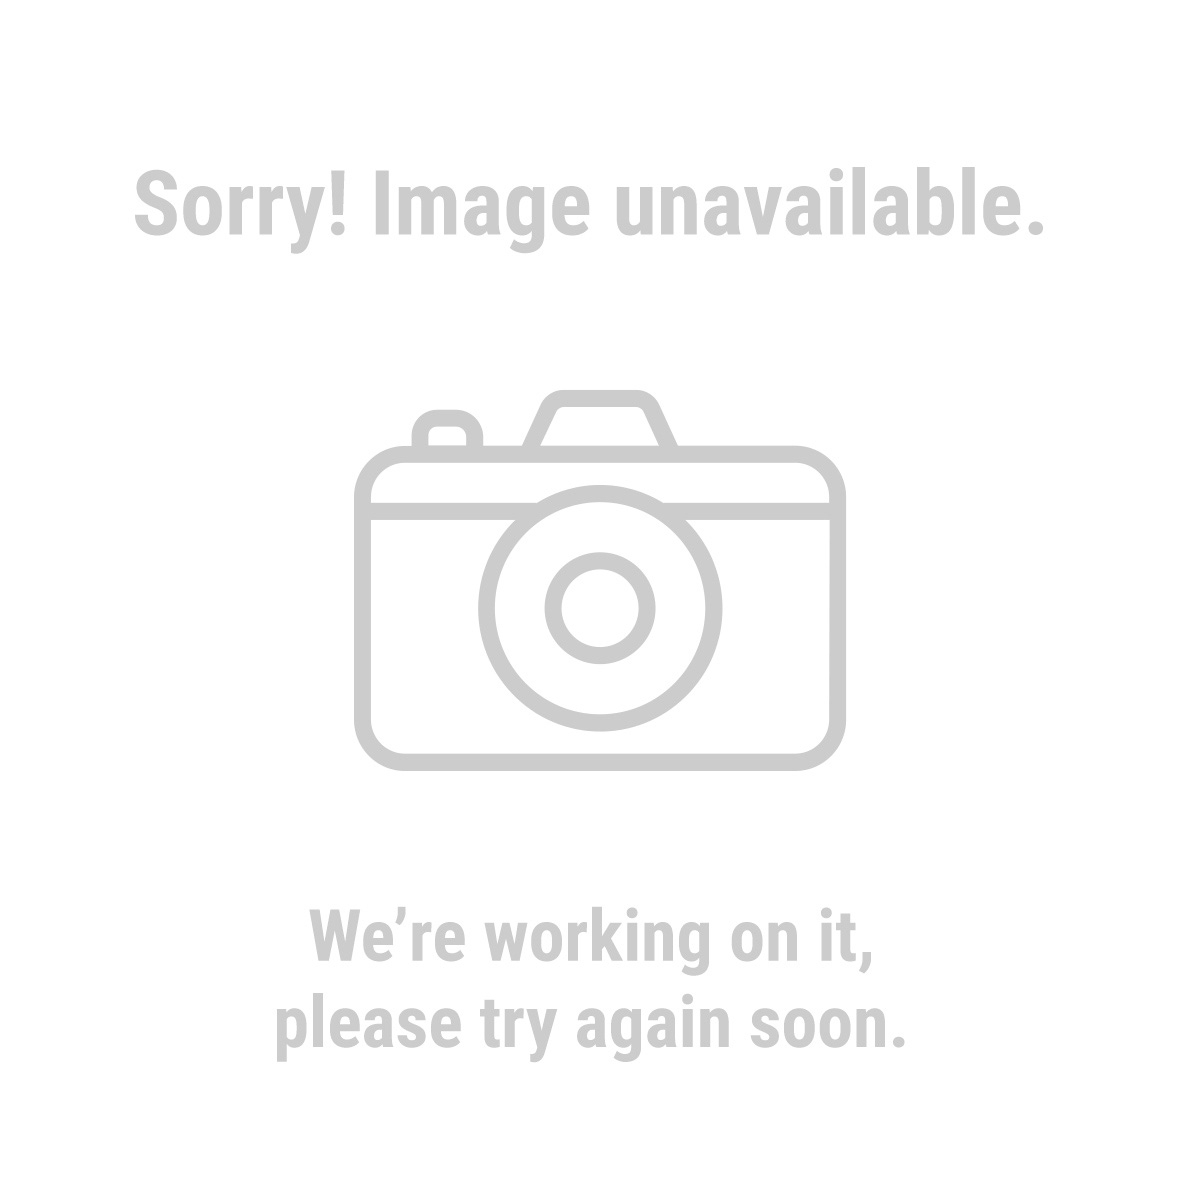 HFT 41448 100 Ft. x 14 Gauge Outdoor Extension Cord